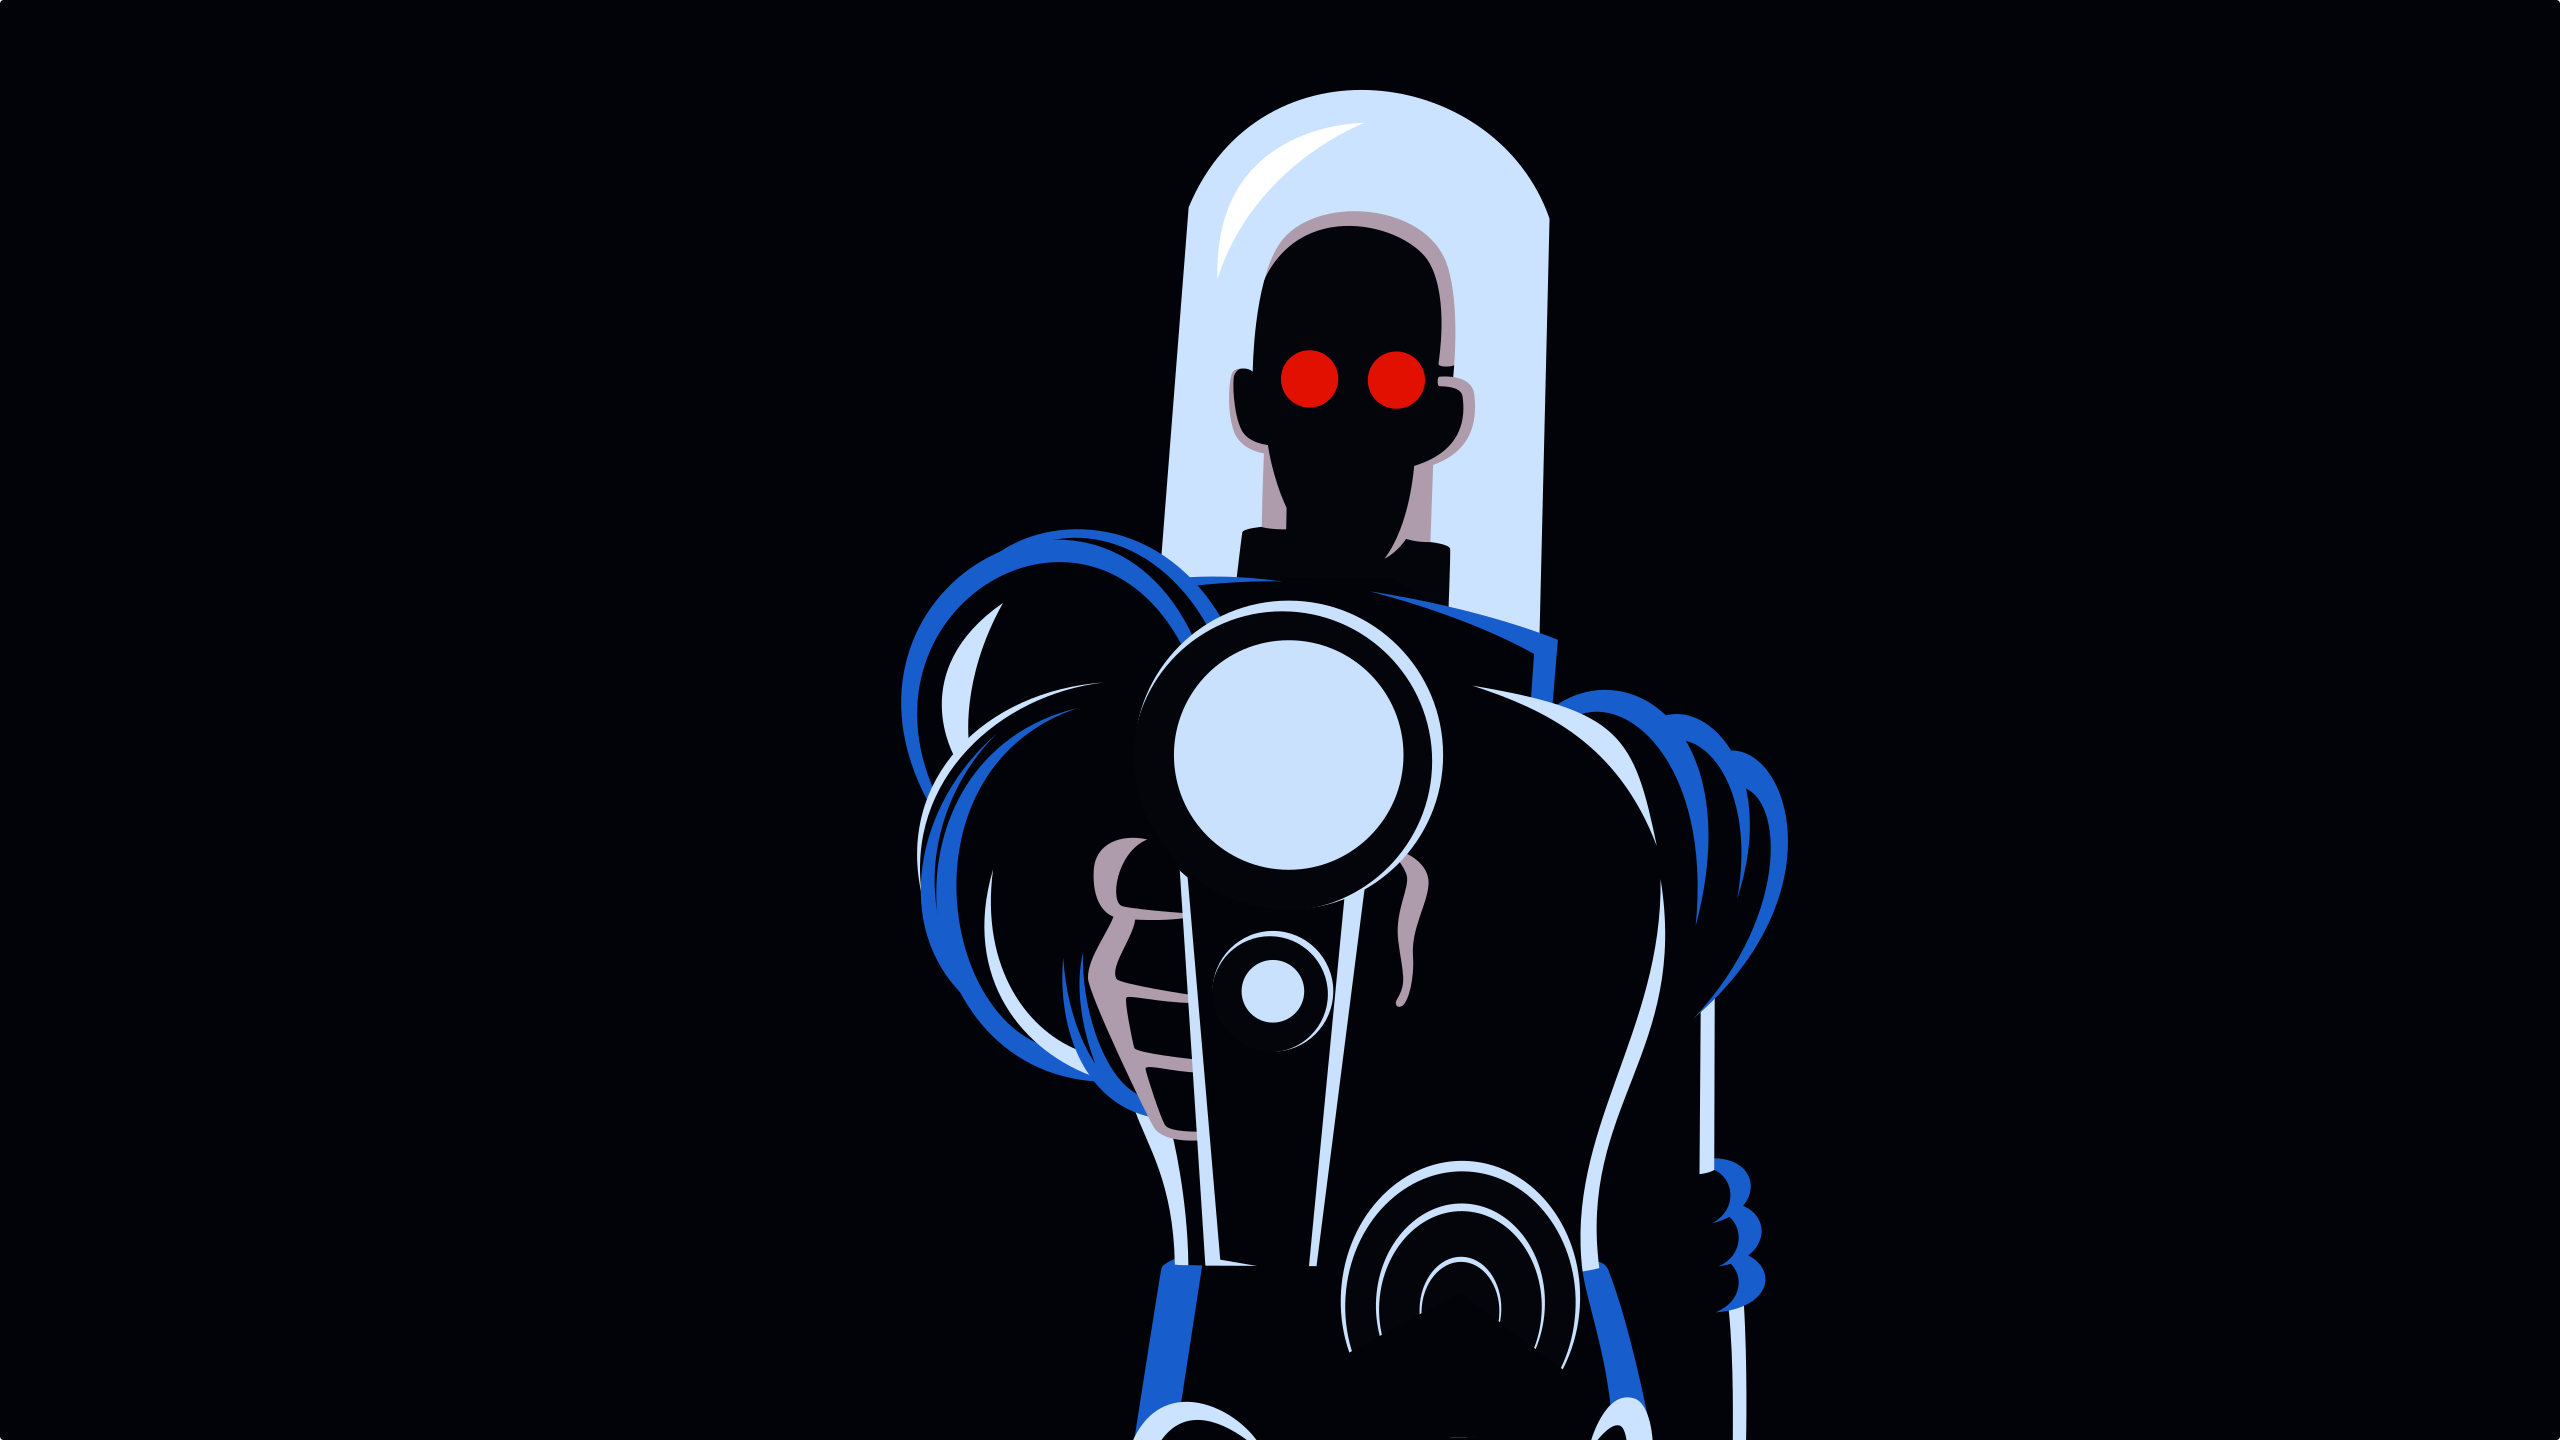 dc comics mr freeze minimalism wallpaper by carionto on